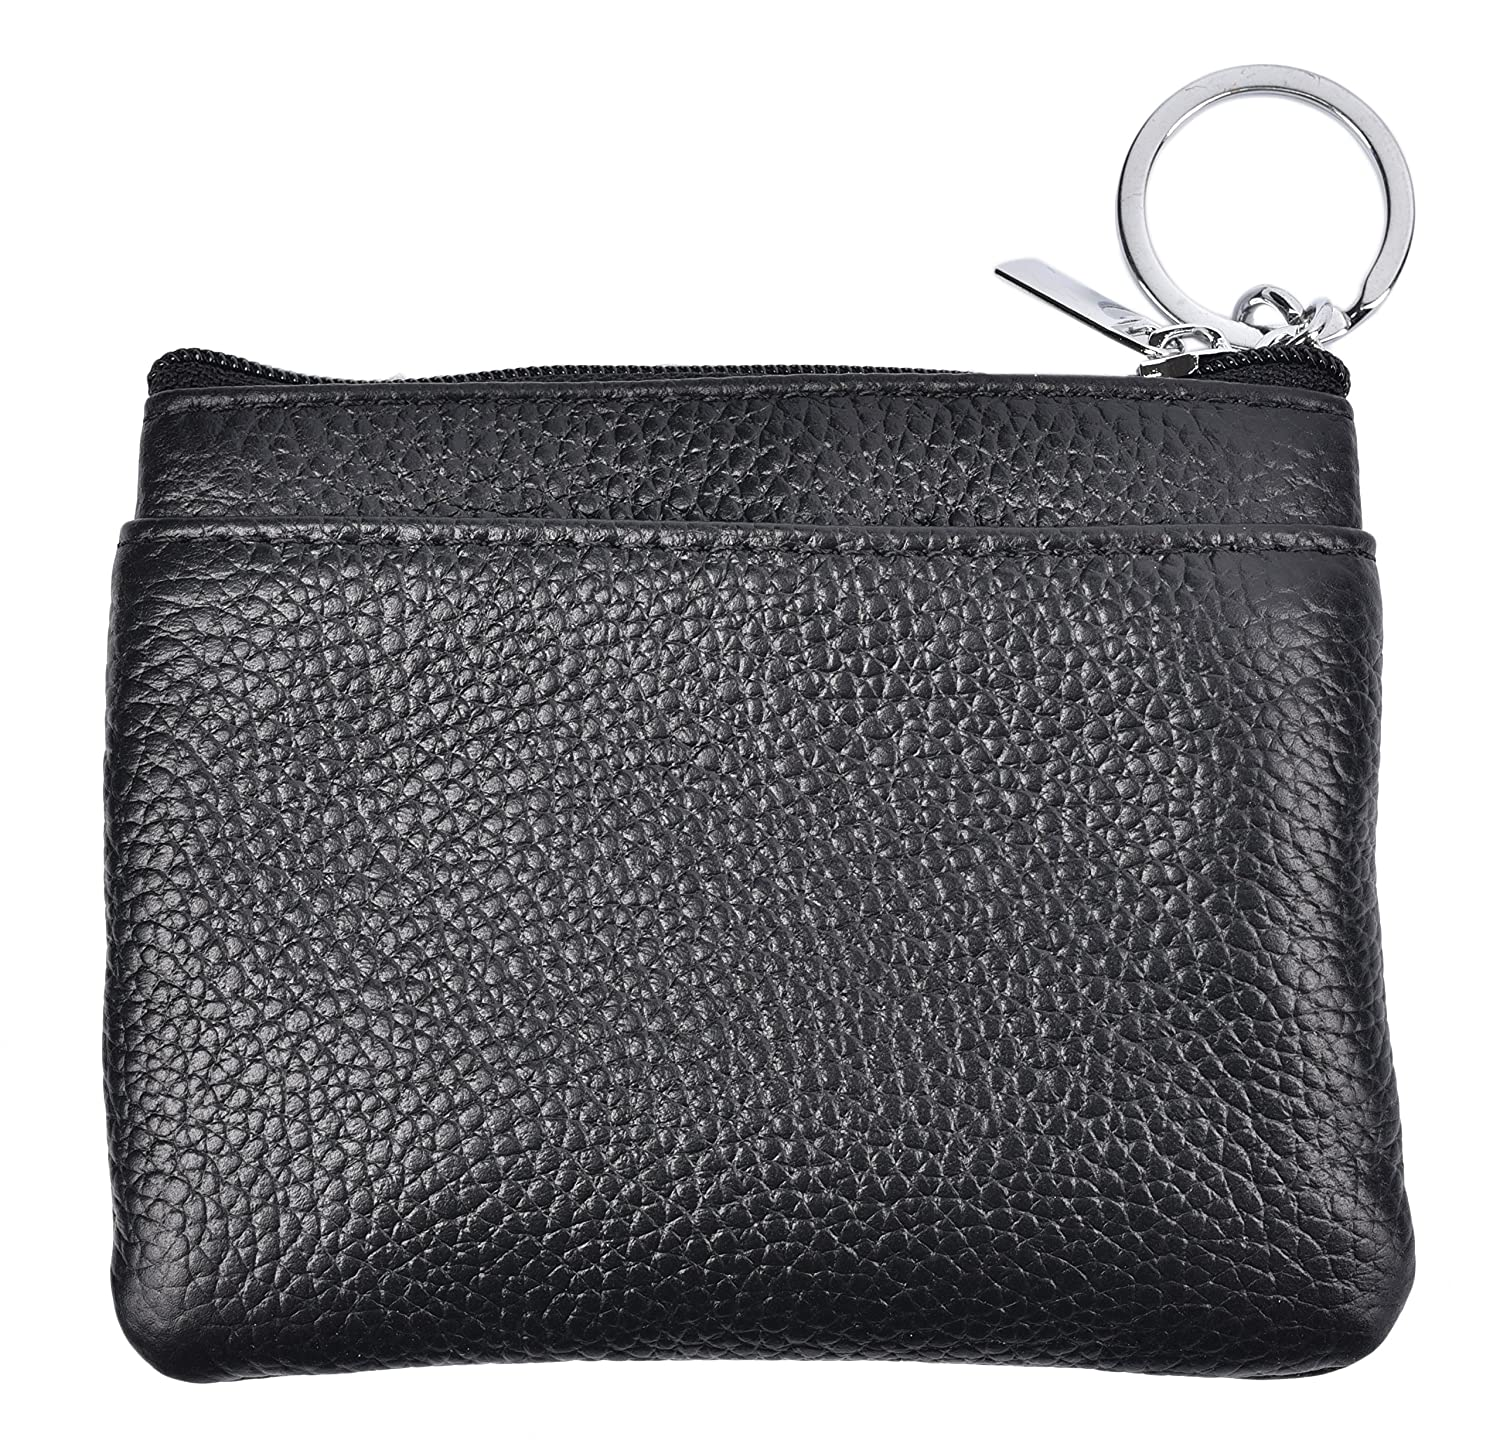 48c26767cd5 Amazon.com  Yeeasy Womens Mini Coin Purse Wallet Genuine Leather Zipper  Pouch with Key Ring (Black)  Shoes